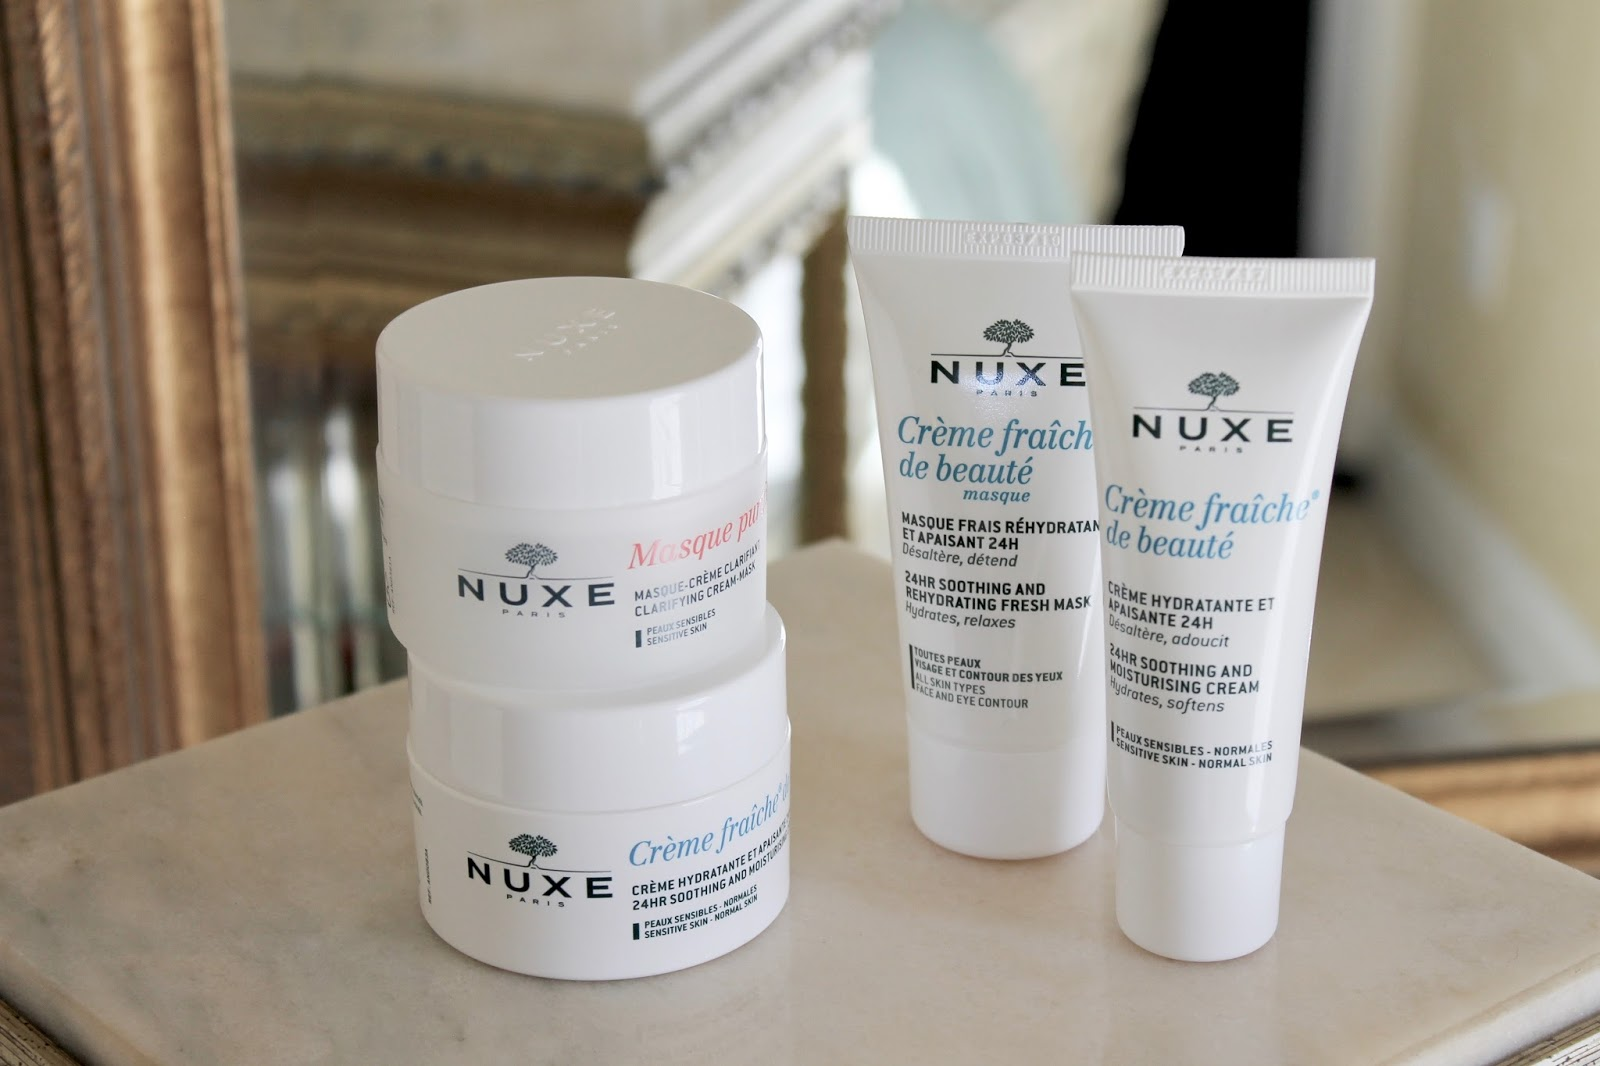 WHY NUXE SKINCARE IS PRETTY AWESOME